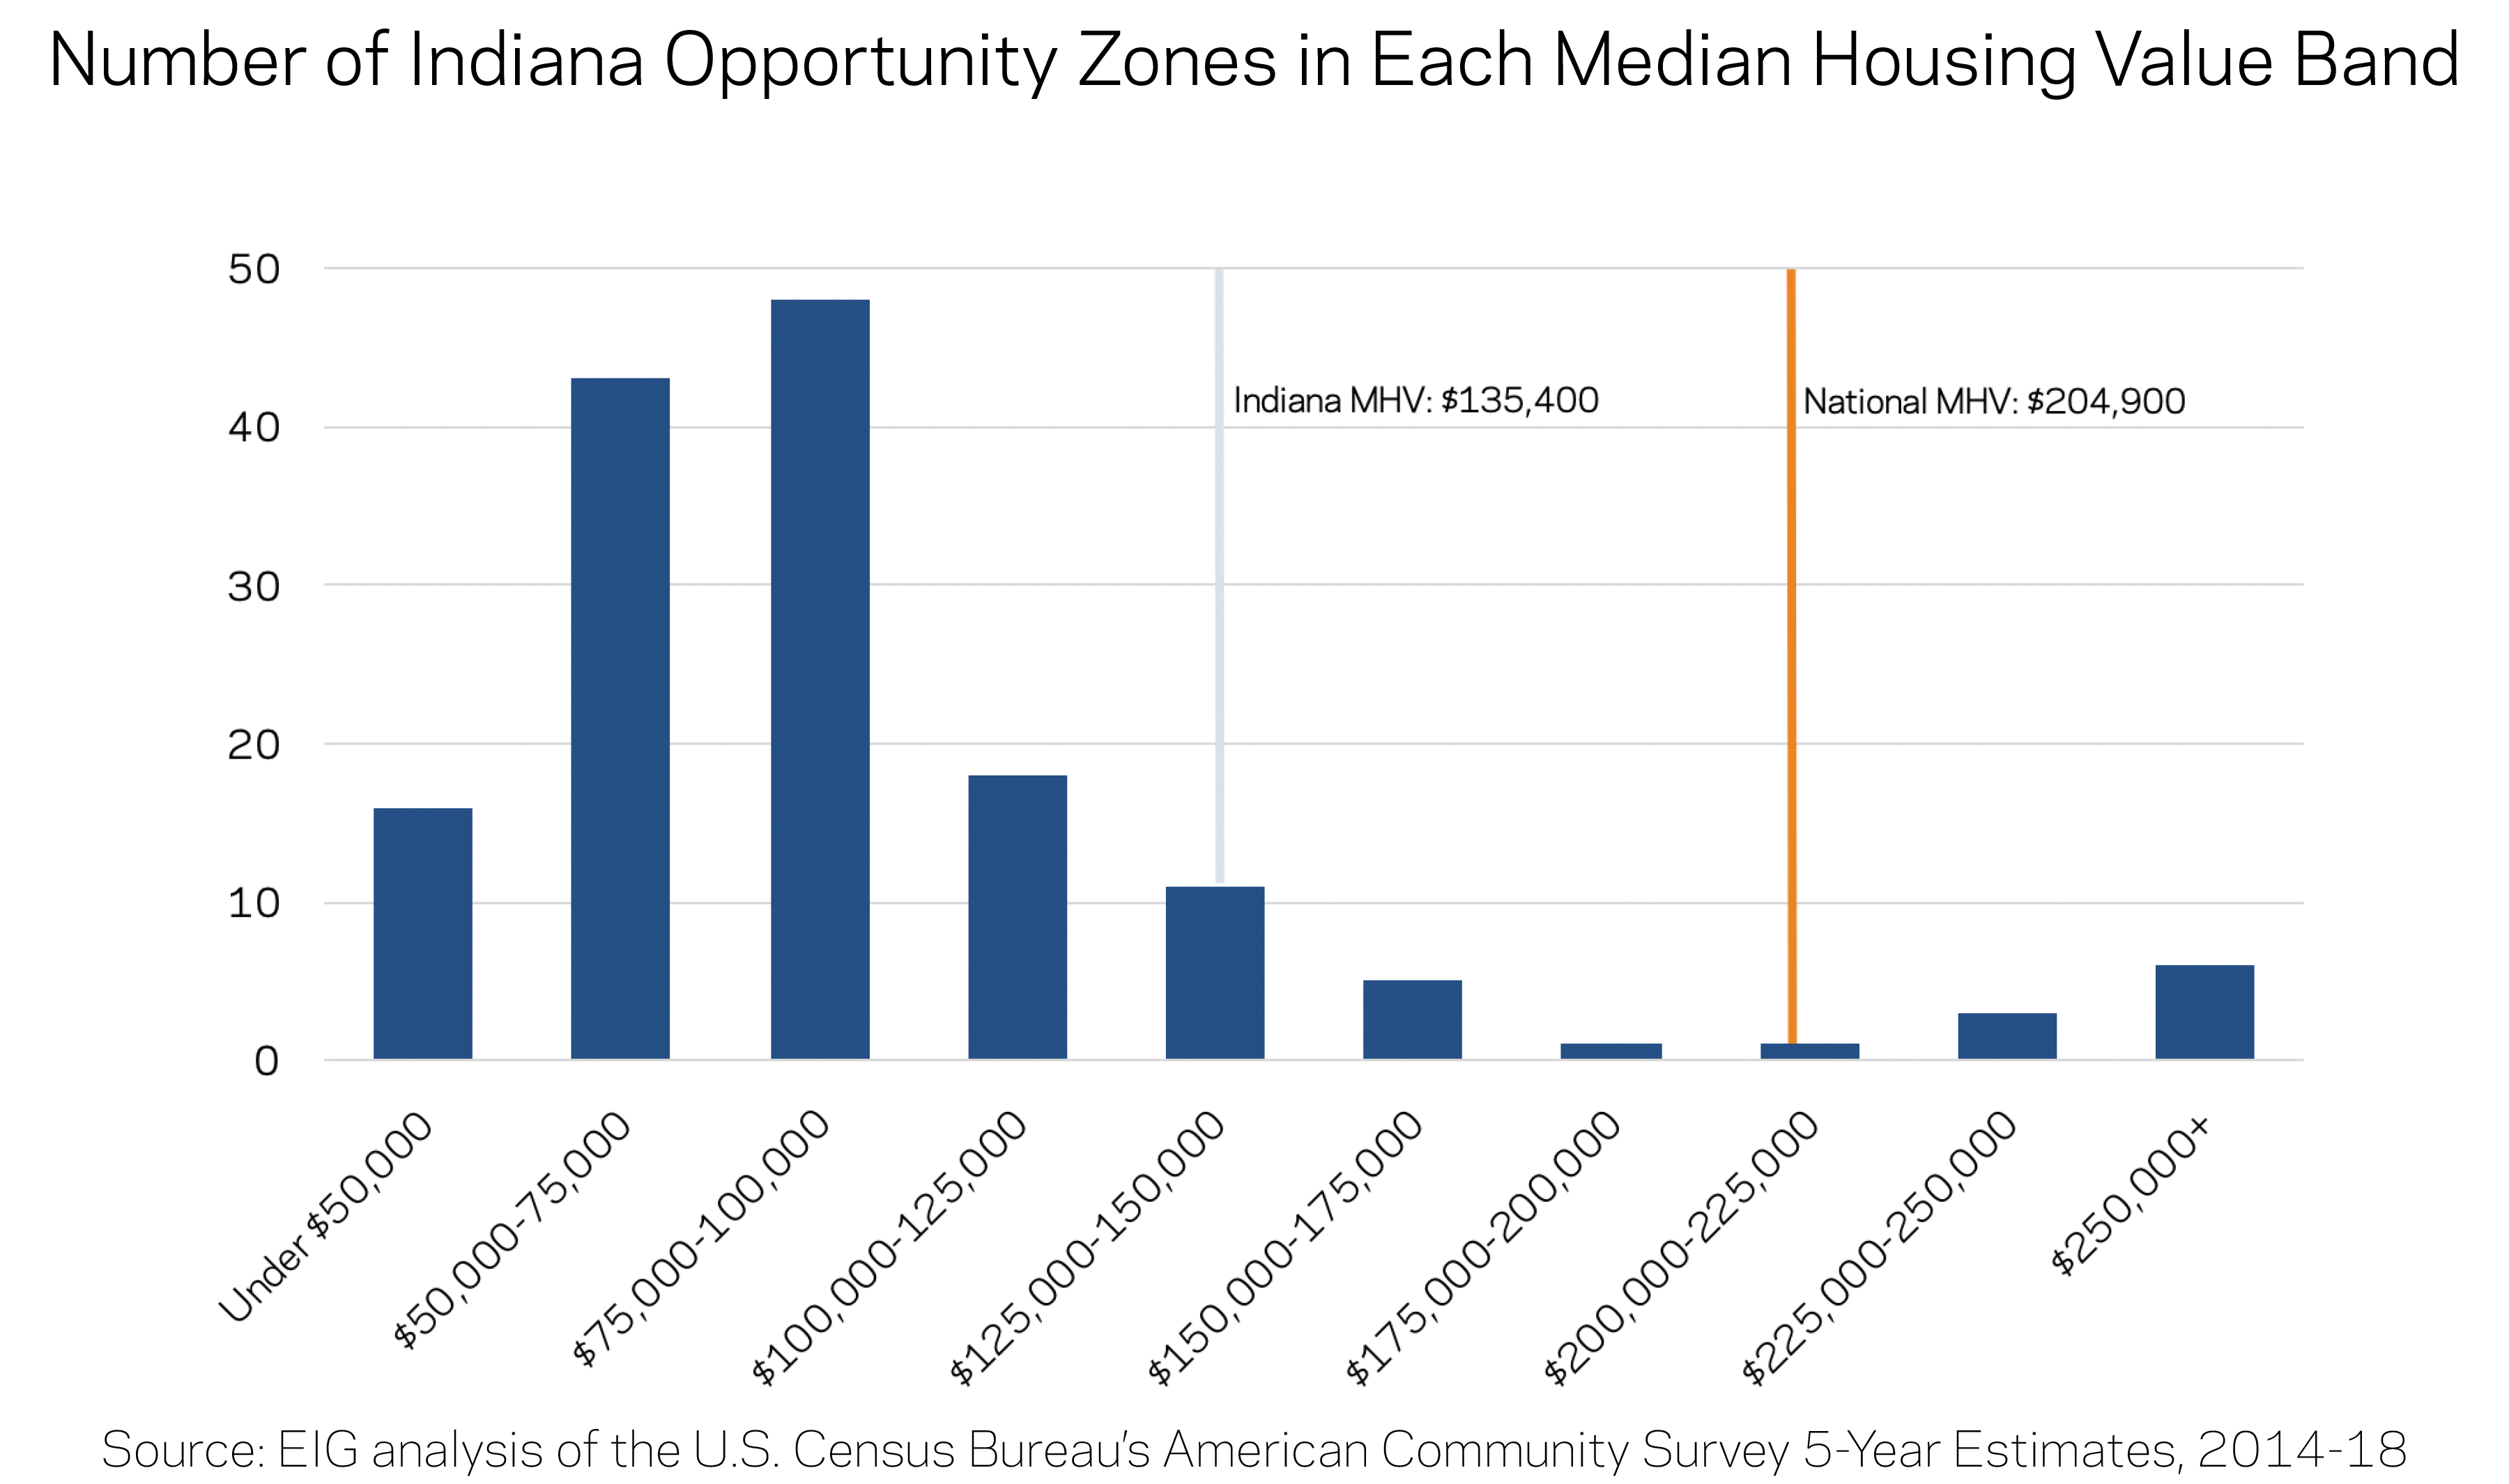 Number of Opportunity Zones in Each Median Housing Value Band